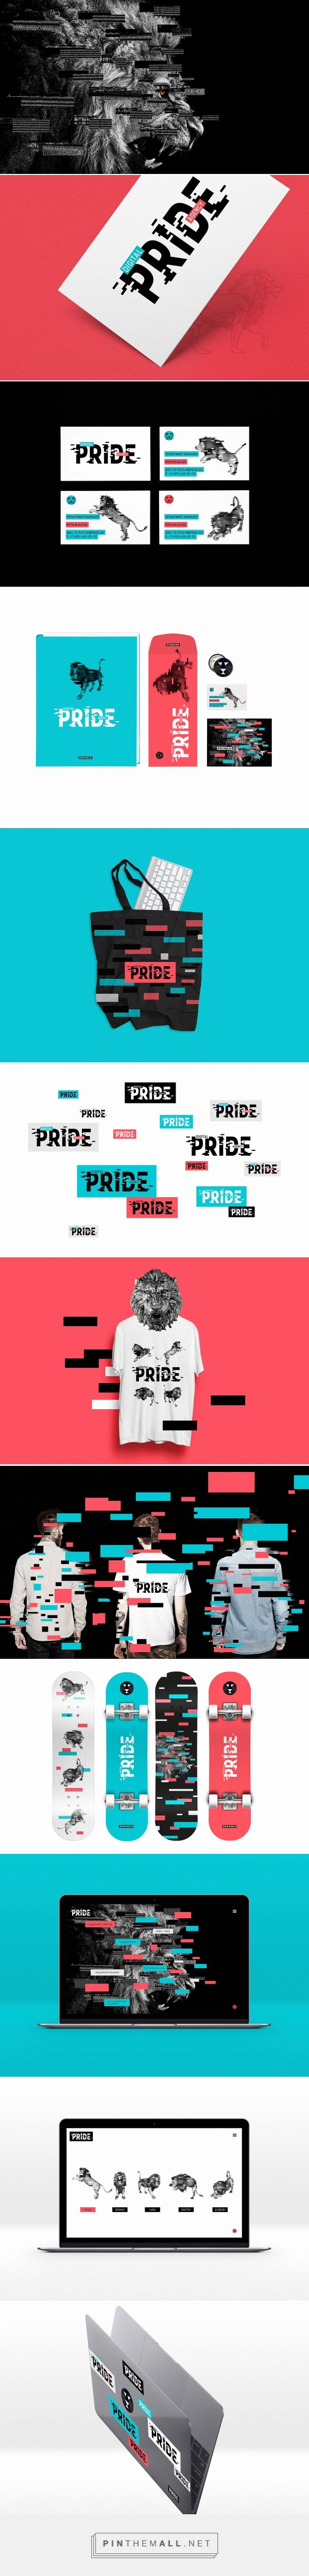 Digital Agency Pride Branding on Behance | Fivestar Branding – Design and Branding Agency & Inspiration Gallery